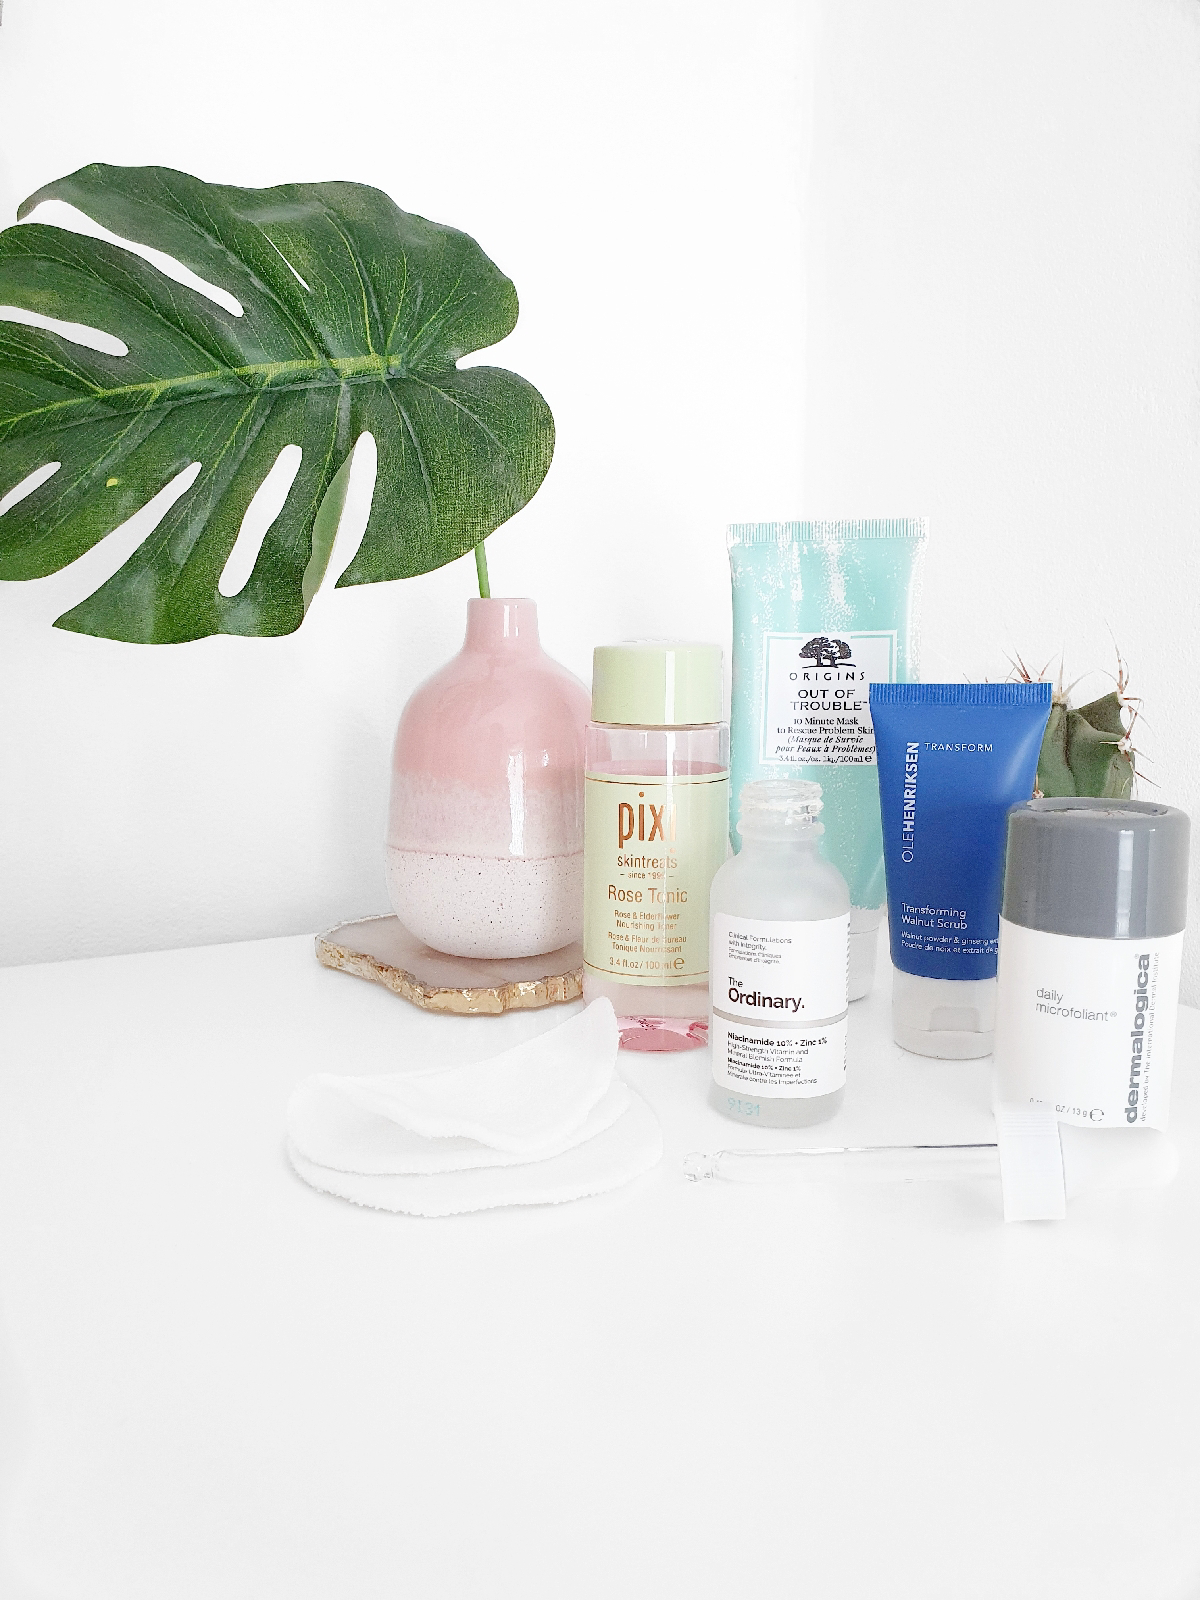 The Skincare I'm Loving Recently